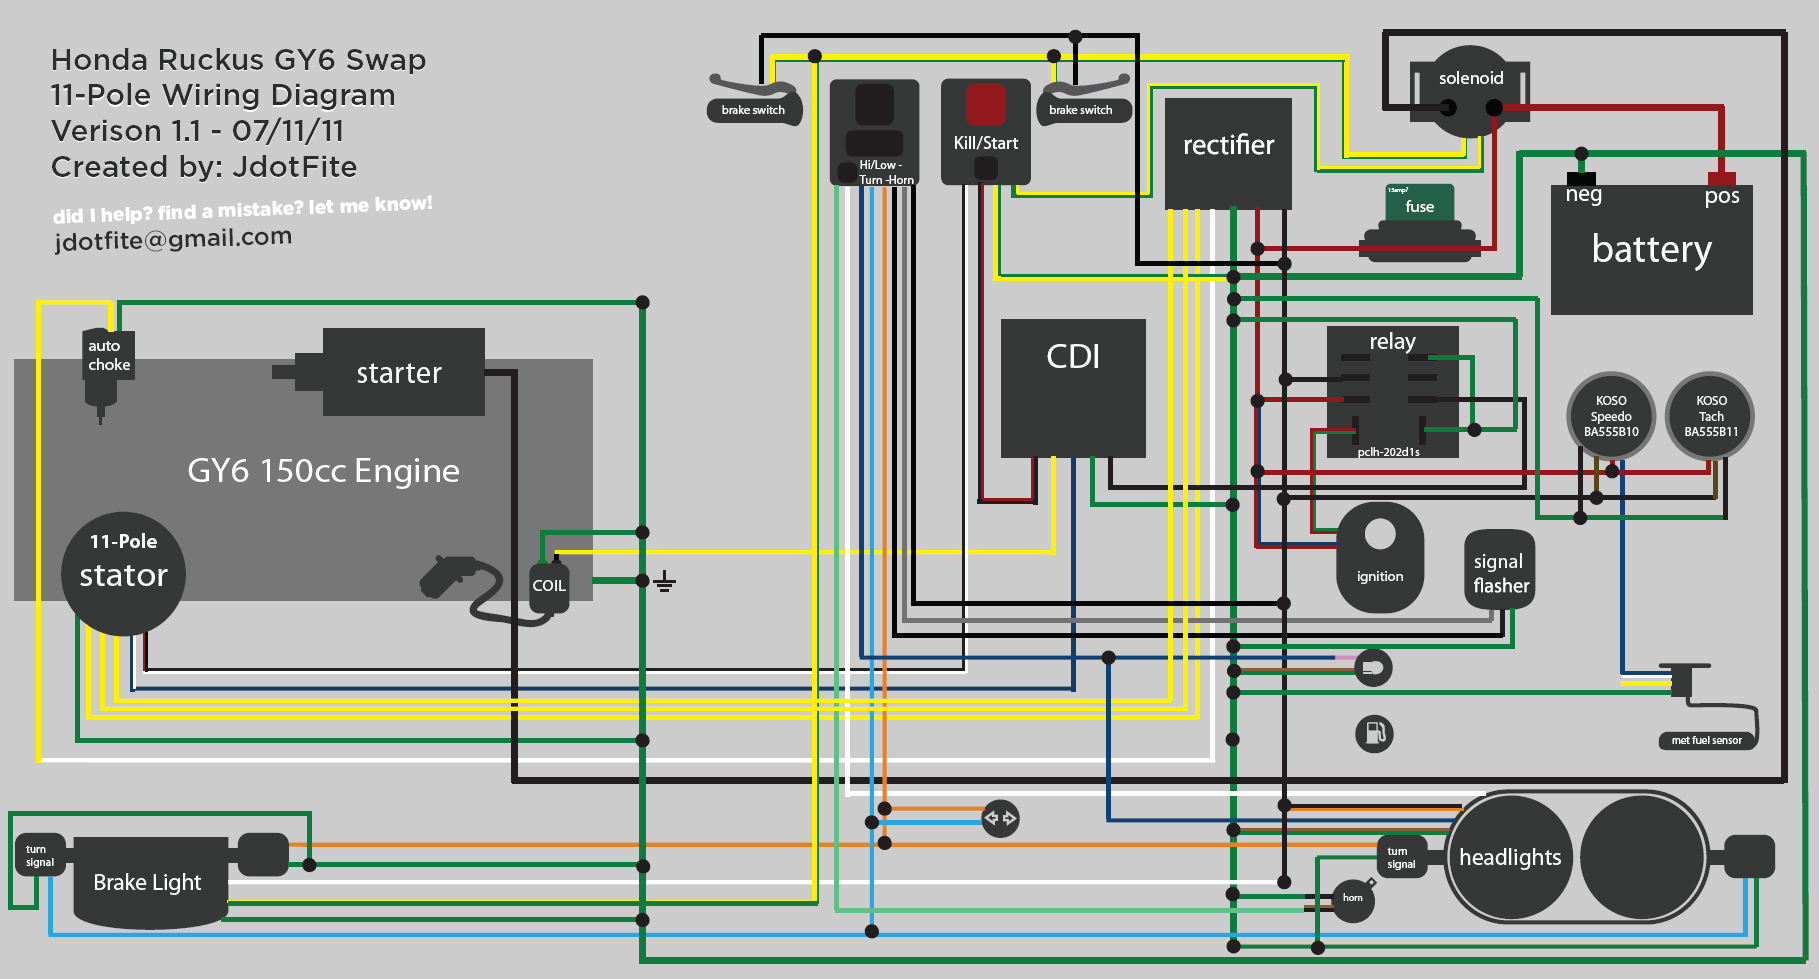 2012 honda ruckus wiring diagram starting know about wiring diagram  [ 1819 x 979 Pixel ]